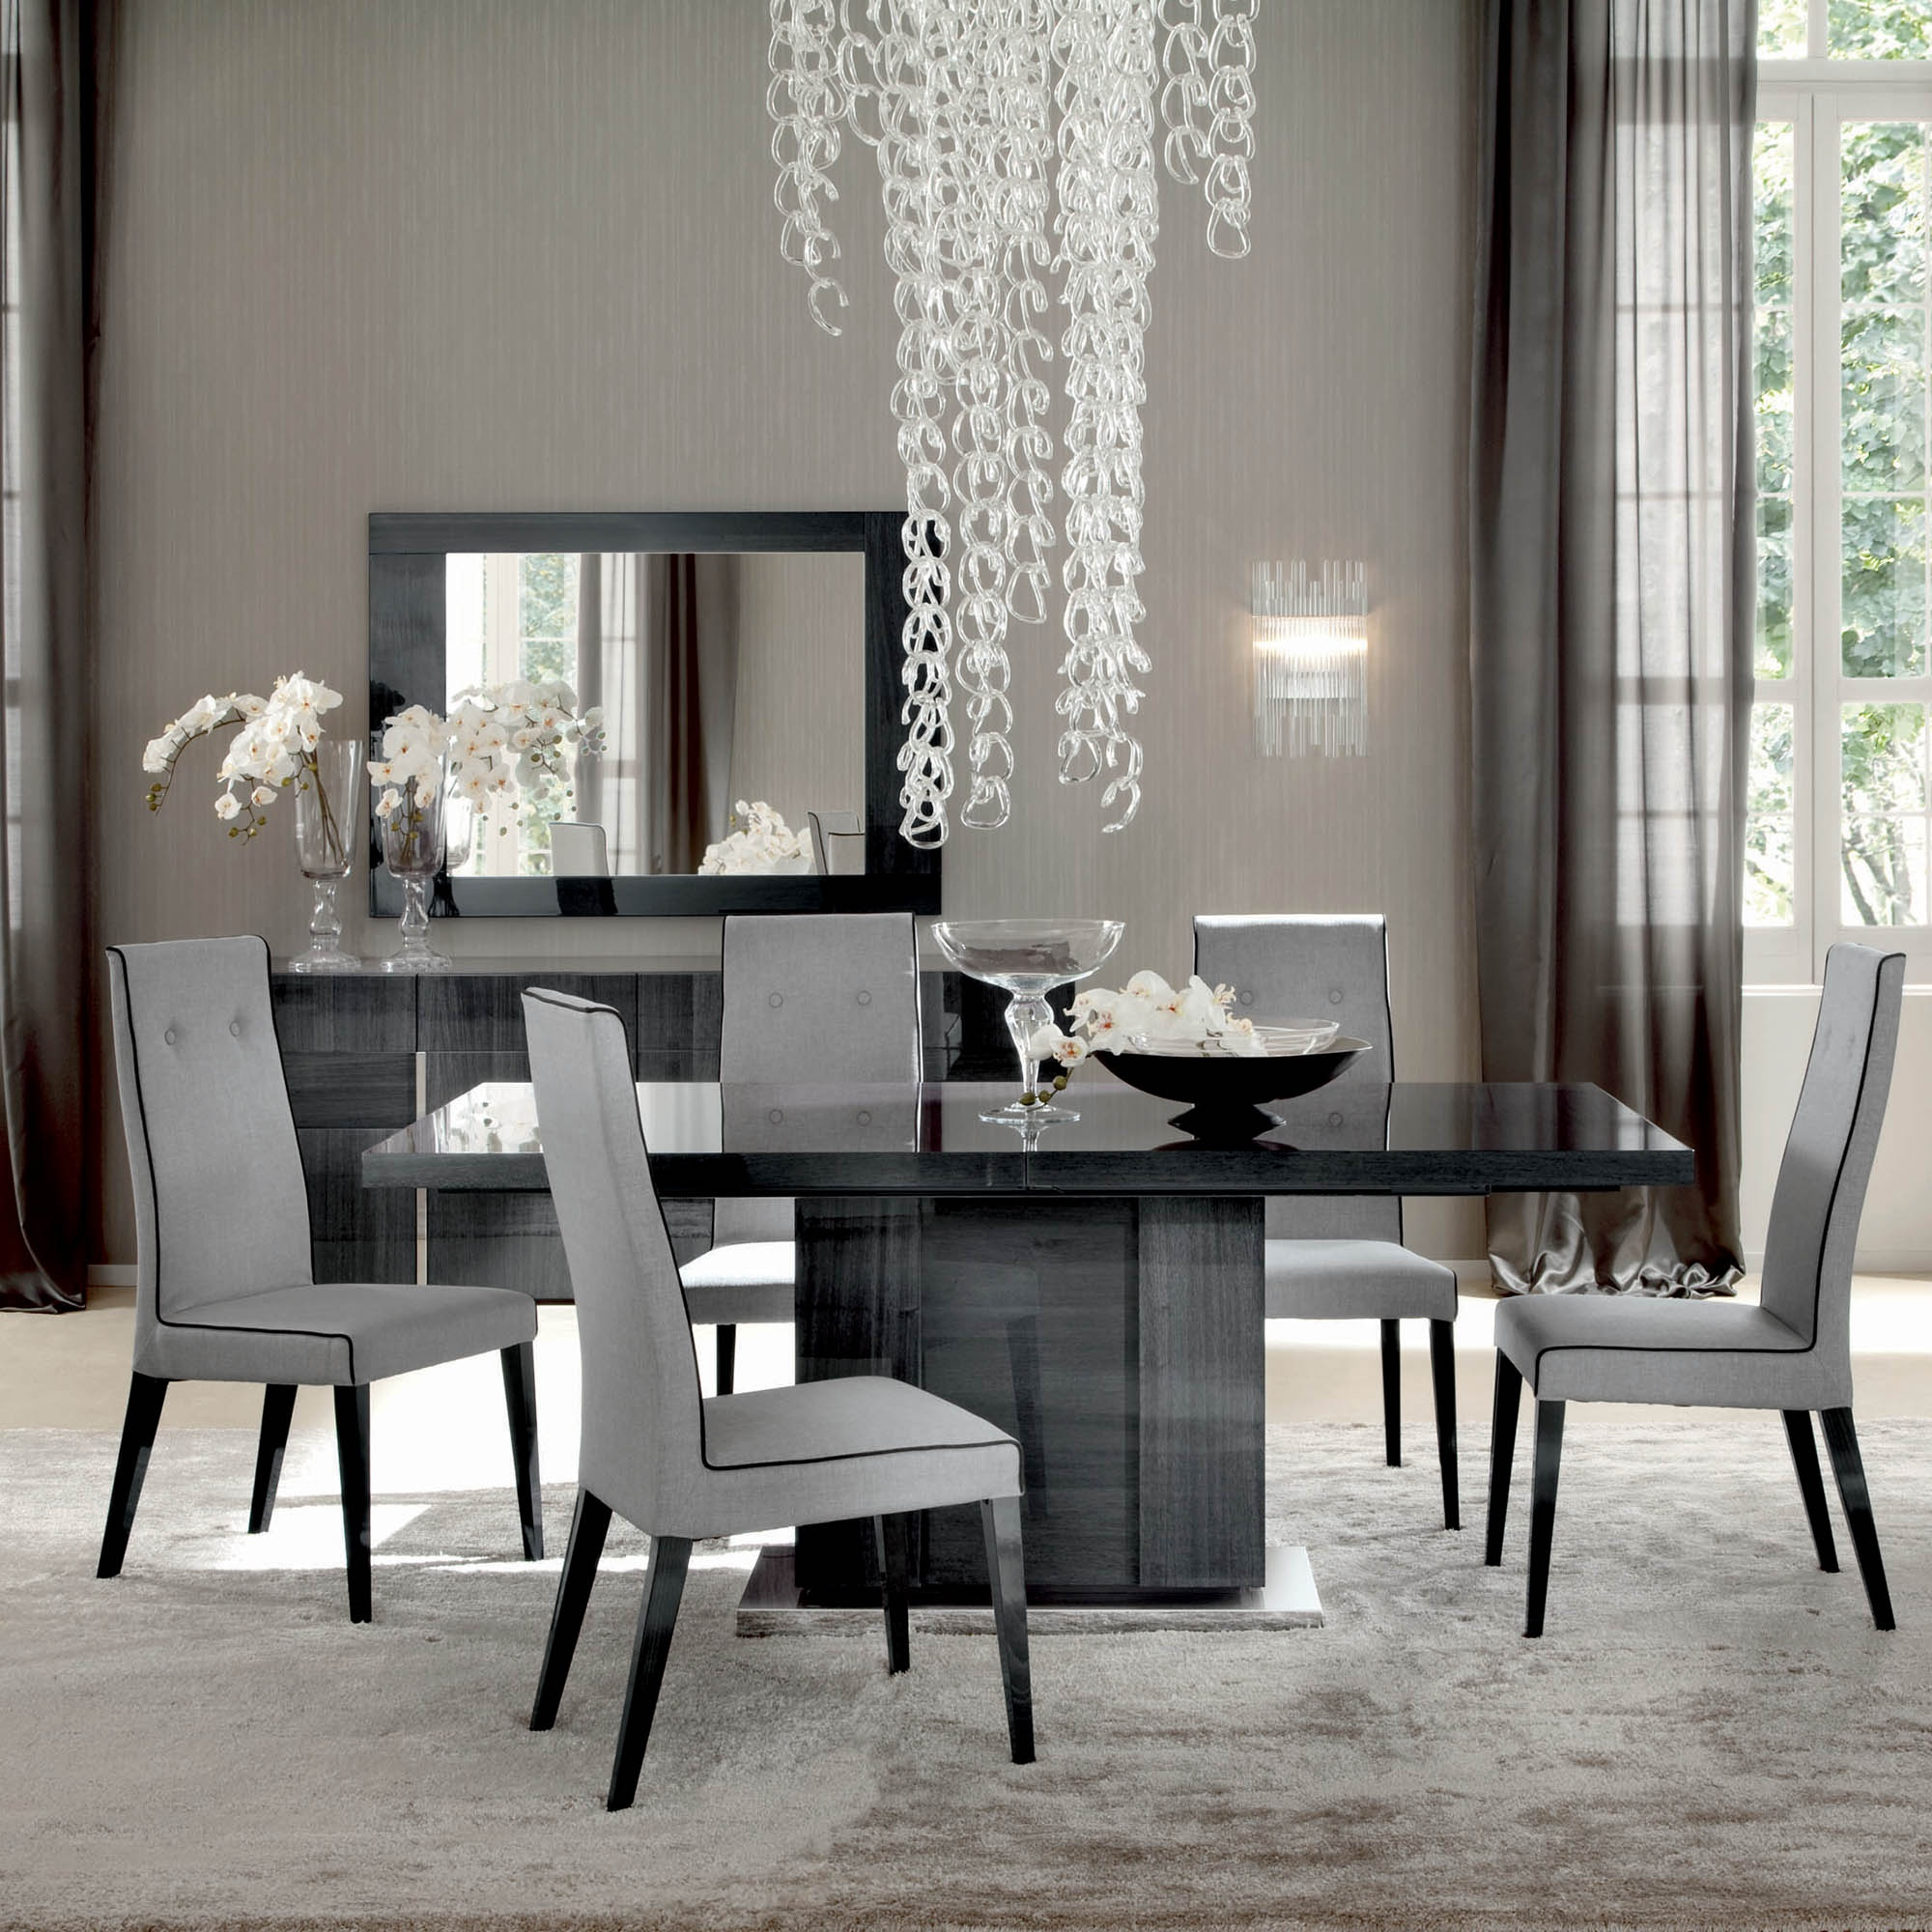 Alf Monte Carlo Dining Table And 6 Chairs Dining Sets